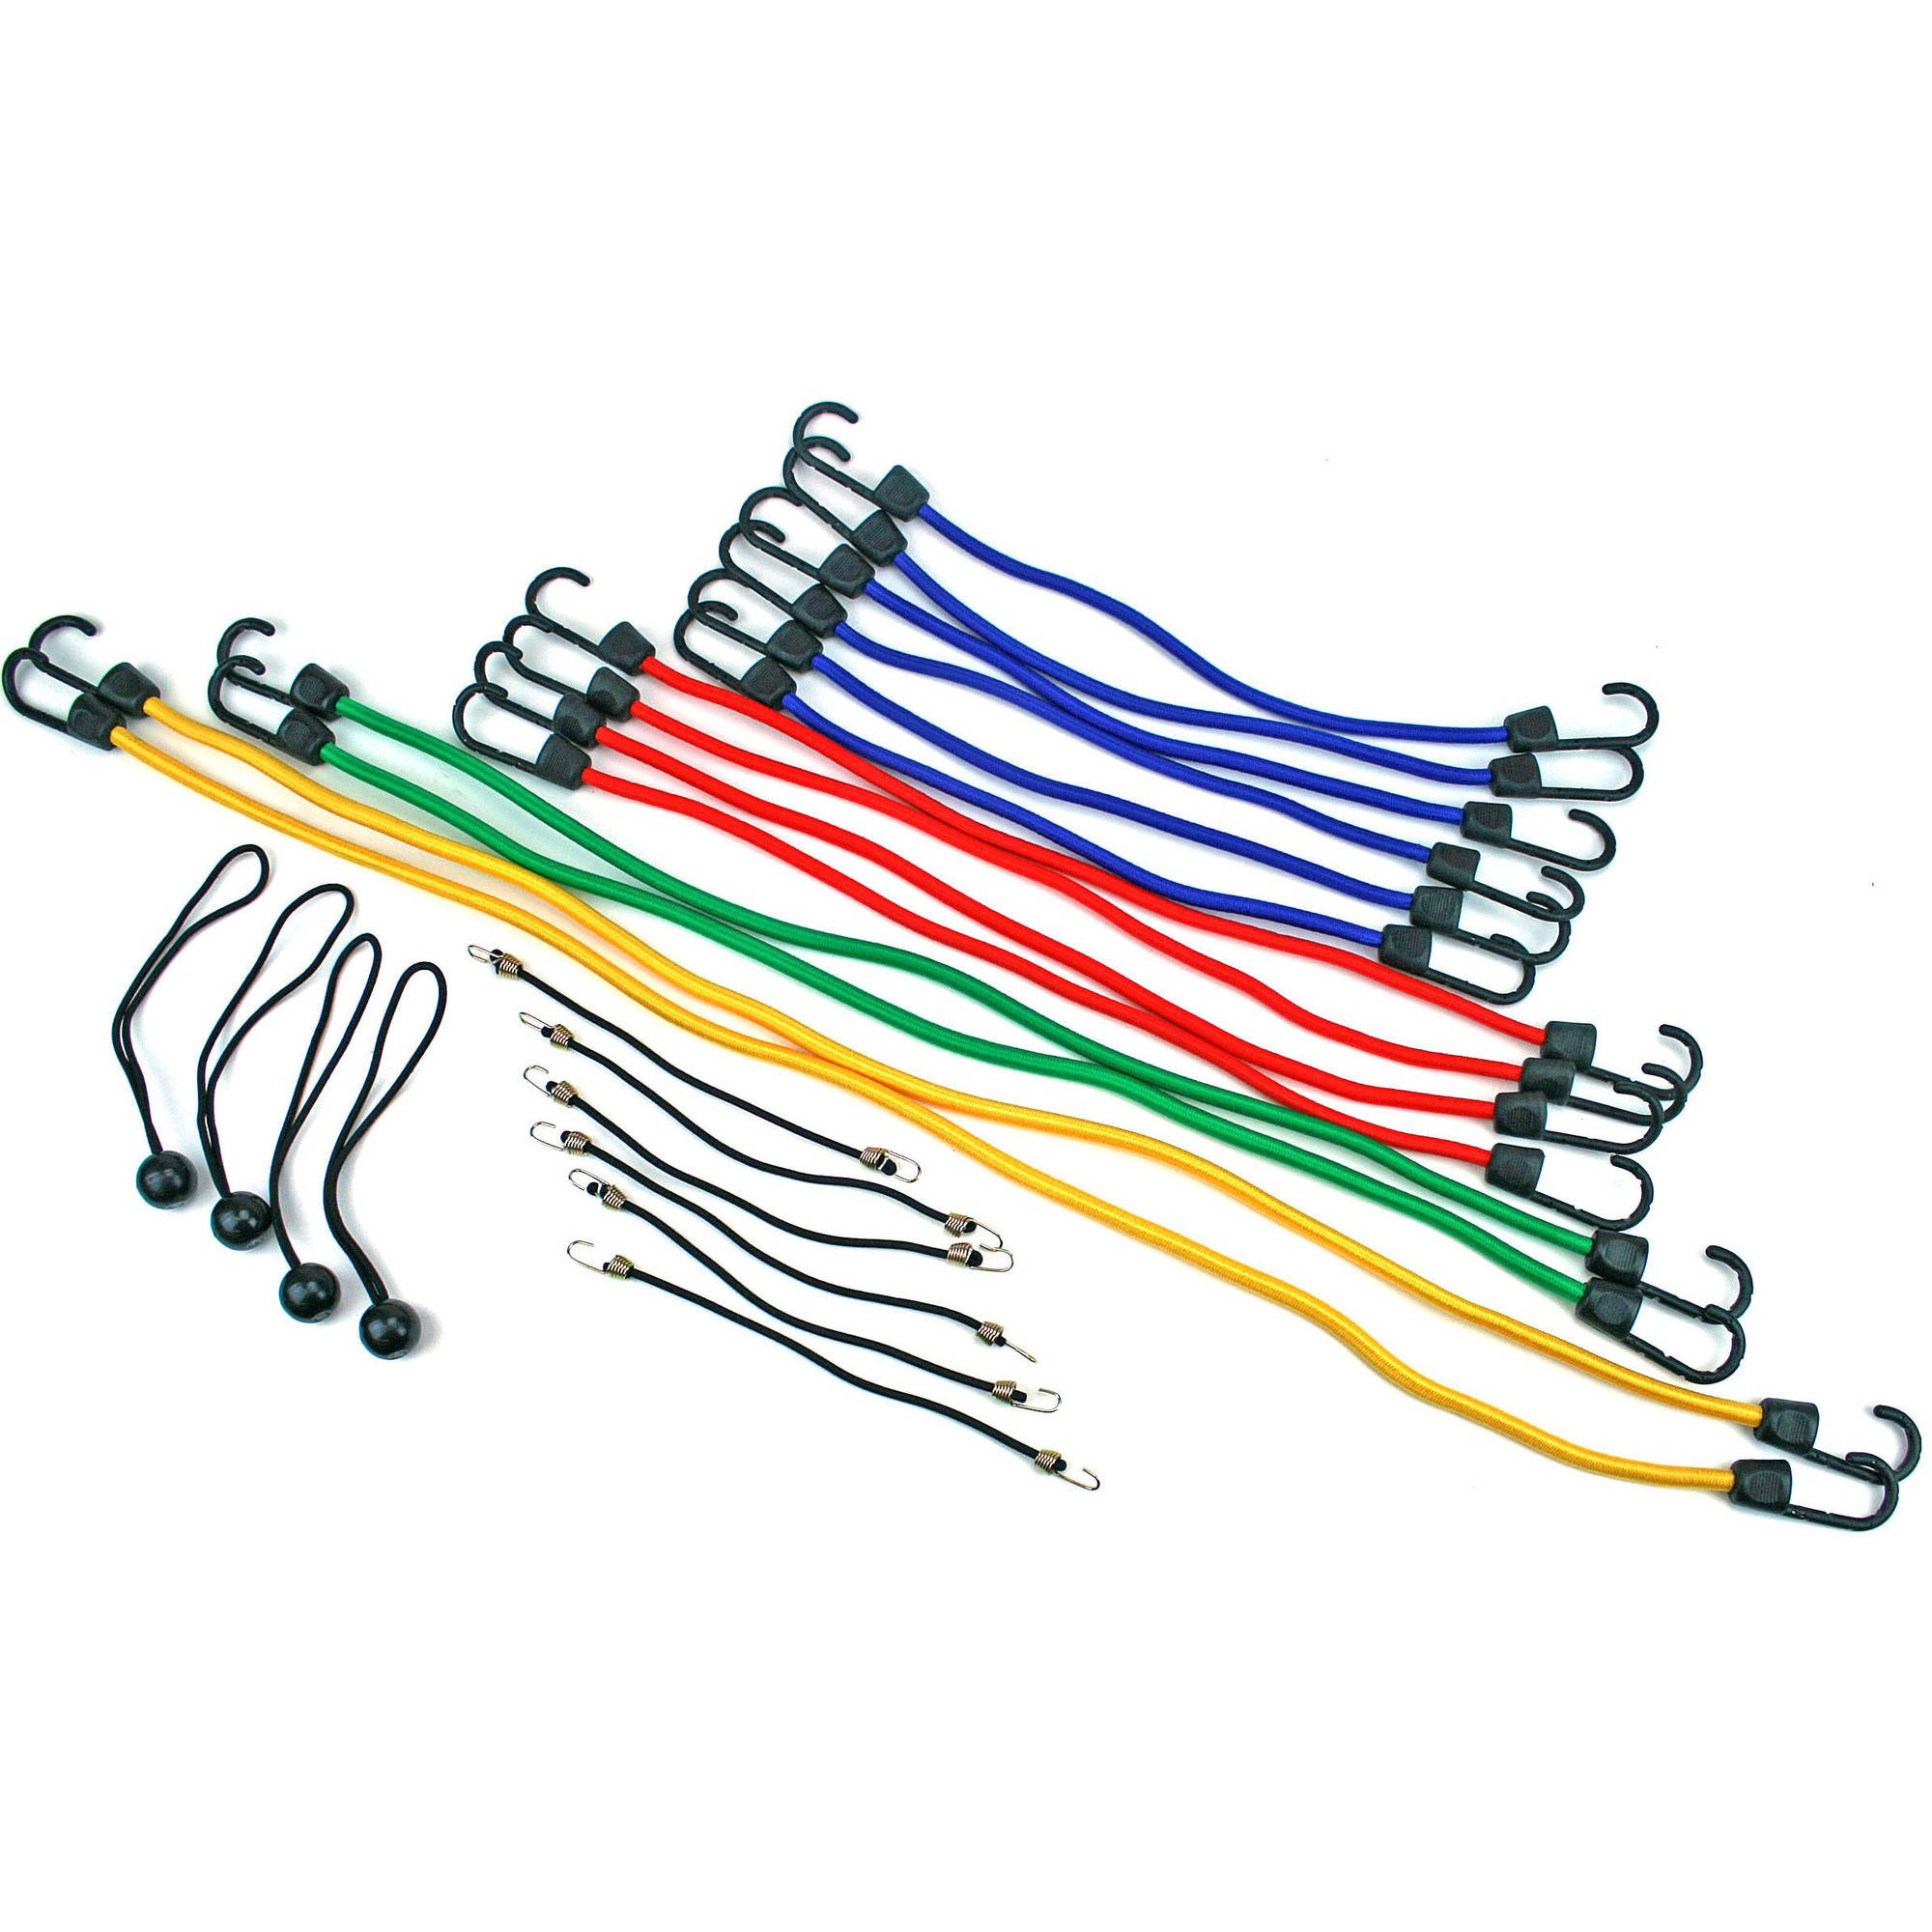 Highland 24-Piece Bungee Cord Assortment, Model # 9008400